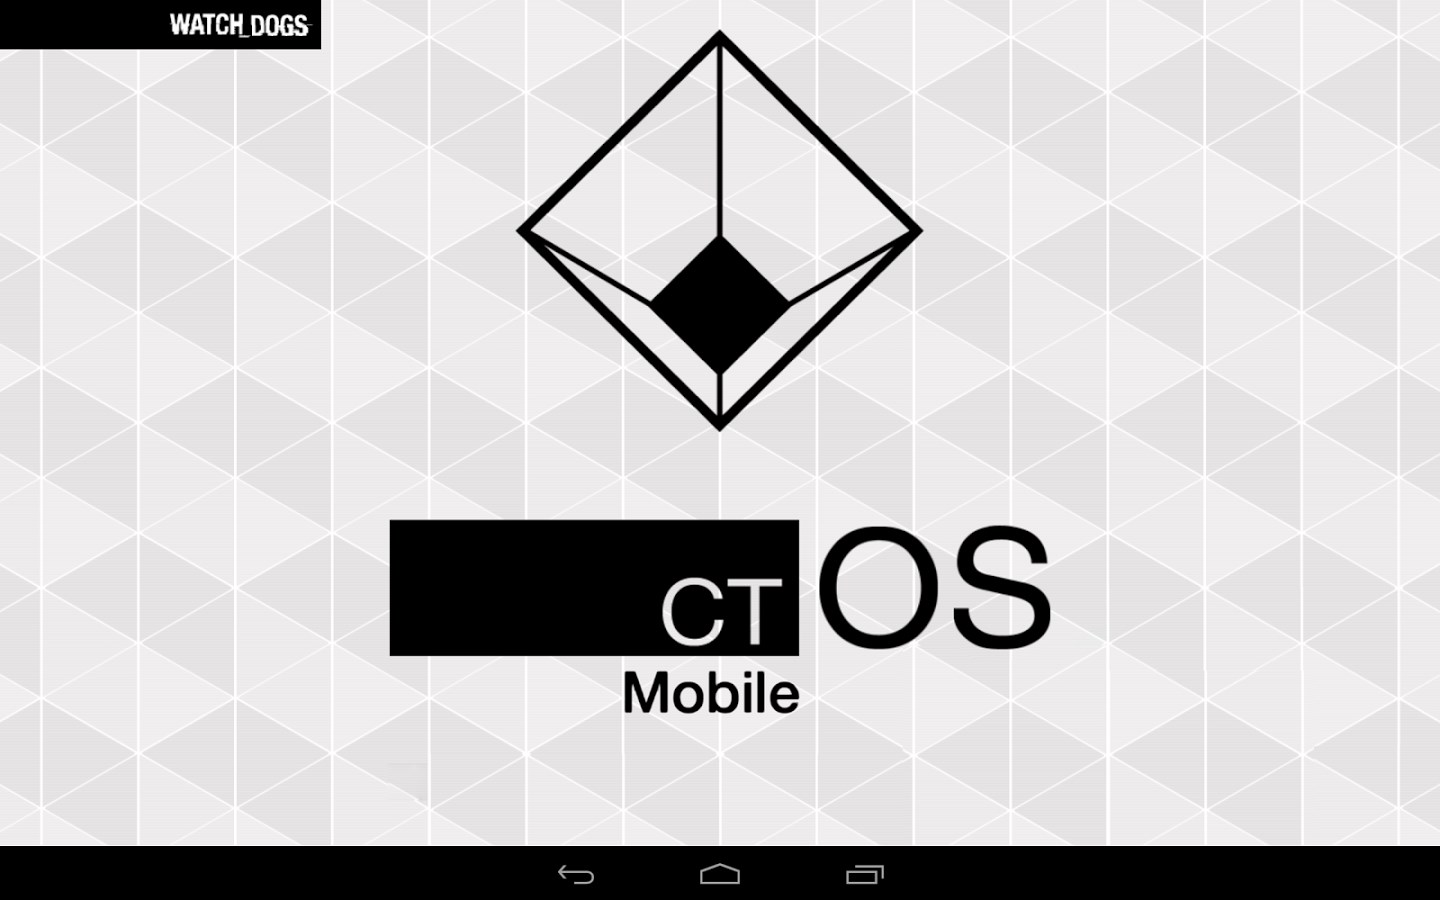 Watch Dogs Companion Ctos Download